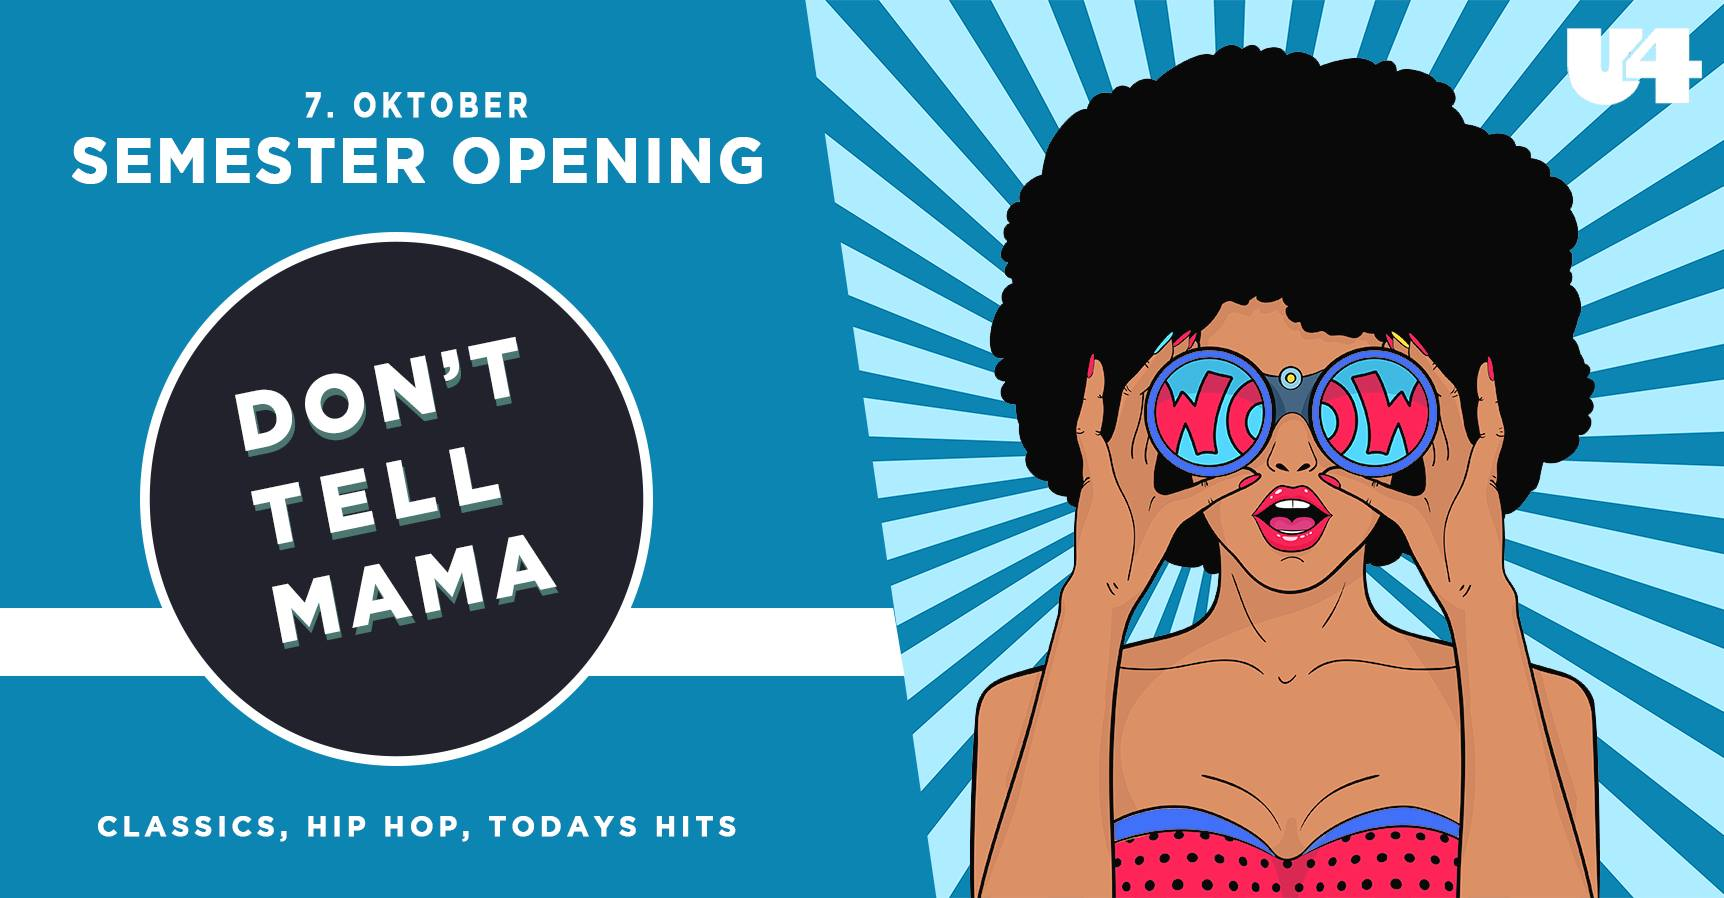 Events Wien: DON'T TELL MAMA – SEMESTER OPENING, BABY! – 7.10 – U4